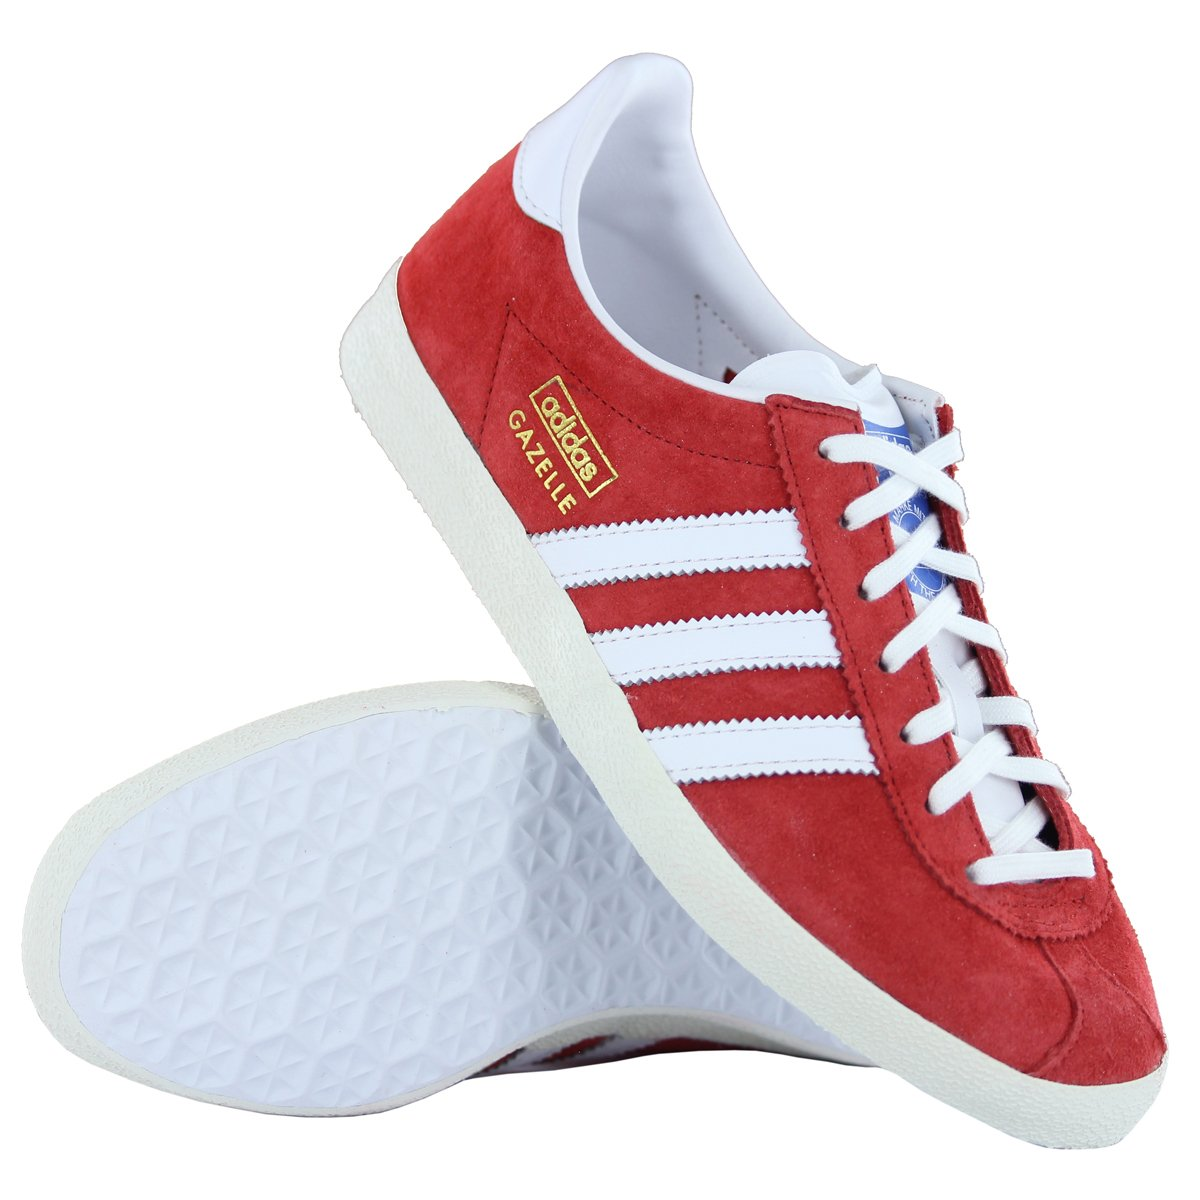 adidas Gazelle OG Red White Suede Leather Damen Trainers